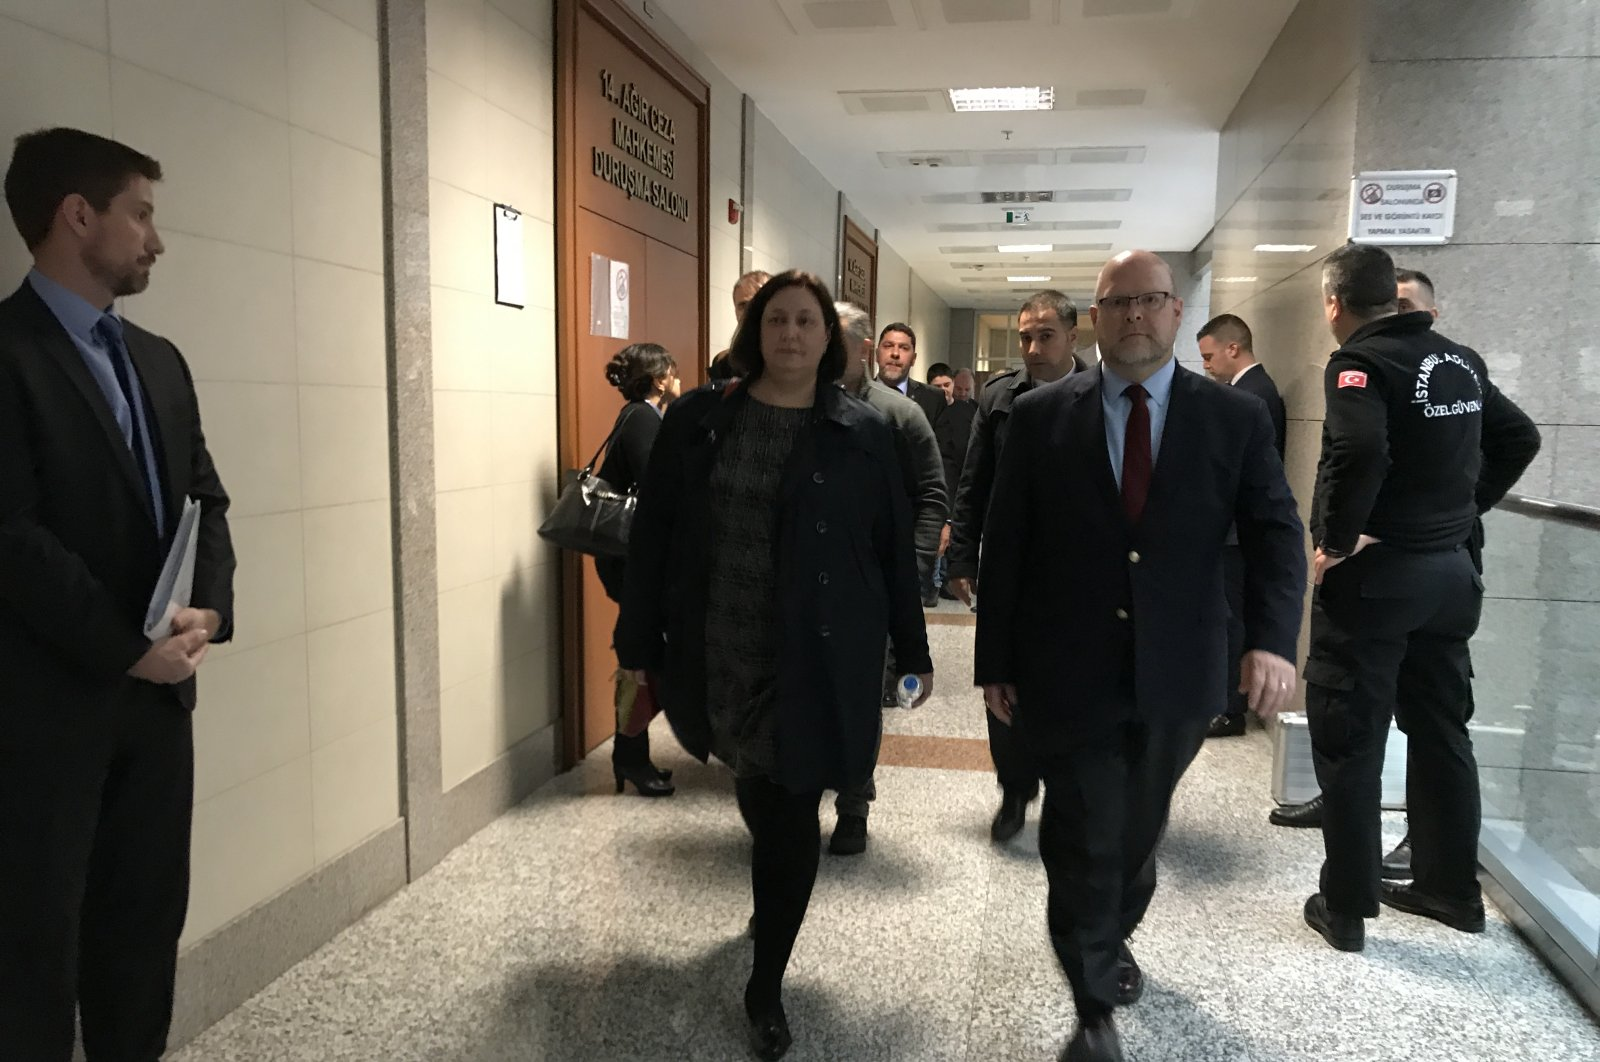 U.S. Consul General Daria Darnell (L) and Charge D'Affaires of the U.S. embassy in Ankara Jeffrey Hovenier watch the hearing, Istanbul, March 10, 2020. (Photo by Fatih Ulaş)